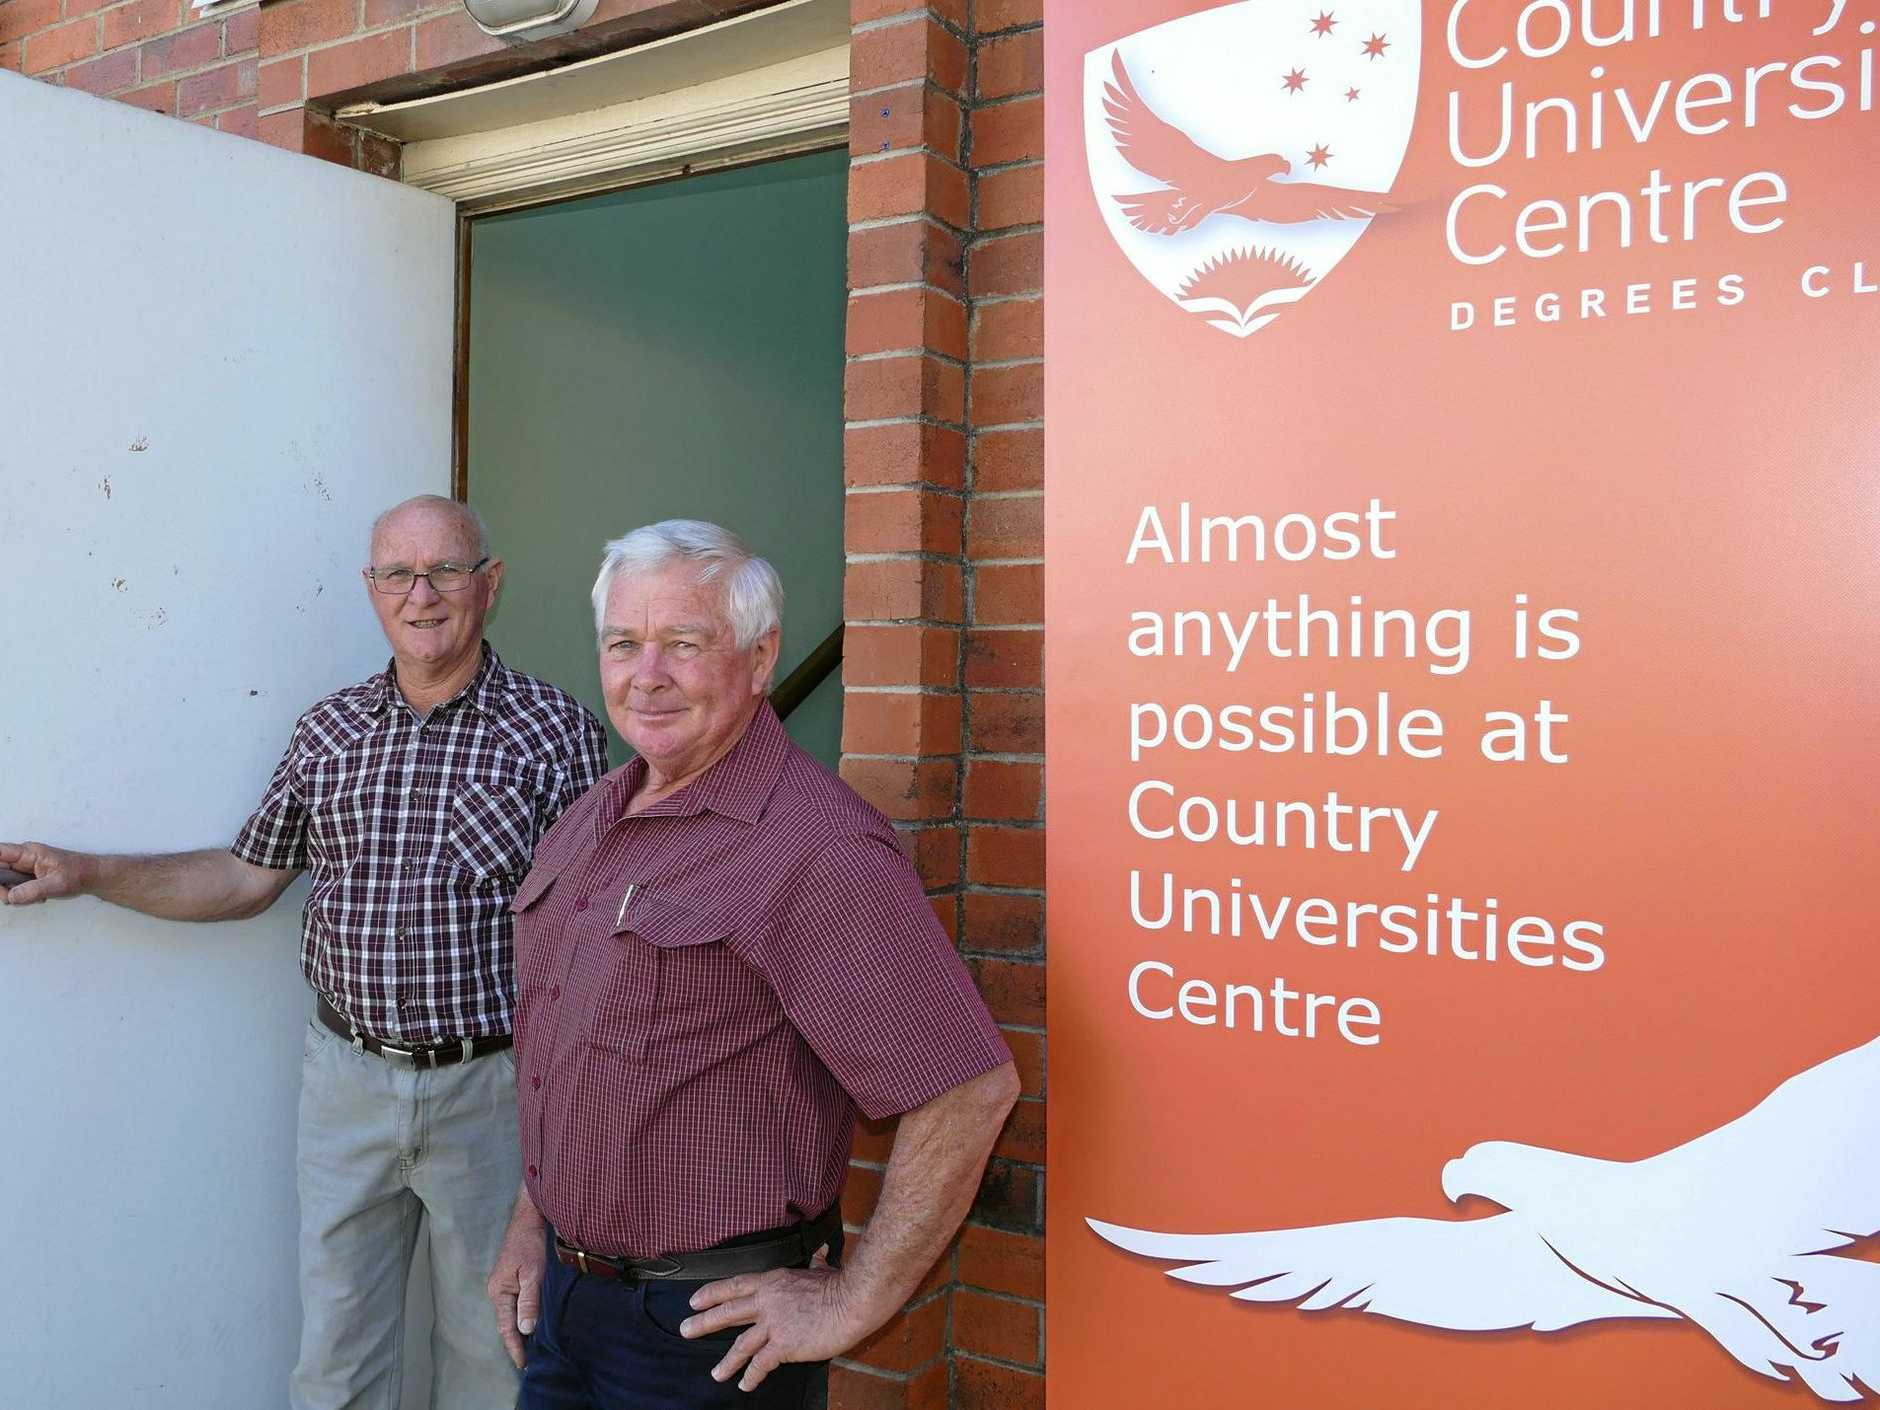 Building owners The Smidt family, Merv, centre, Col and his wife Cindy have been generous with a rent honeymoon for the proposed Country University Centre at 146 Pound St, Grafton.